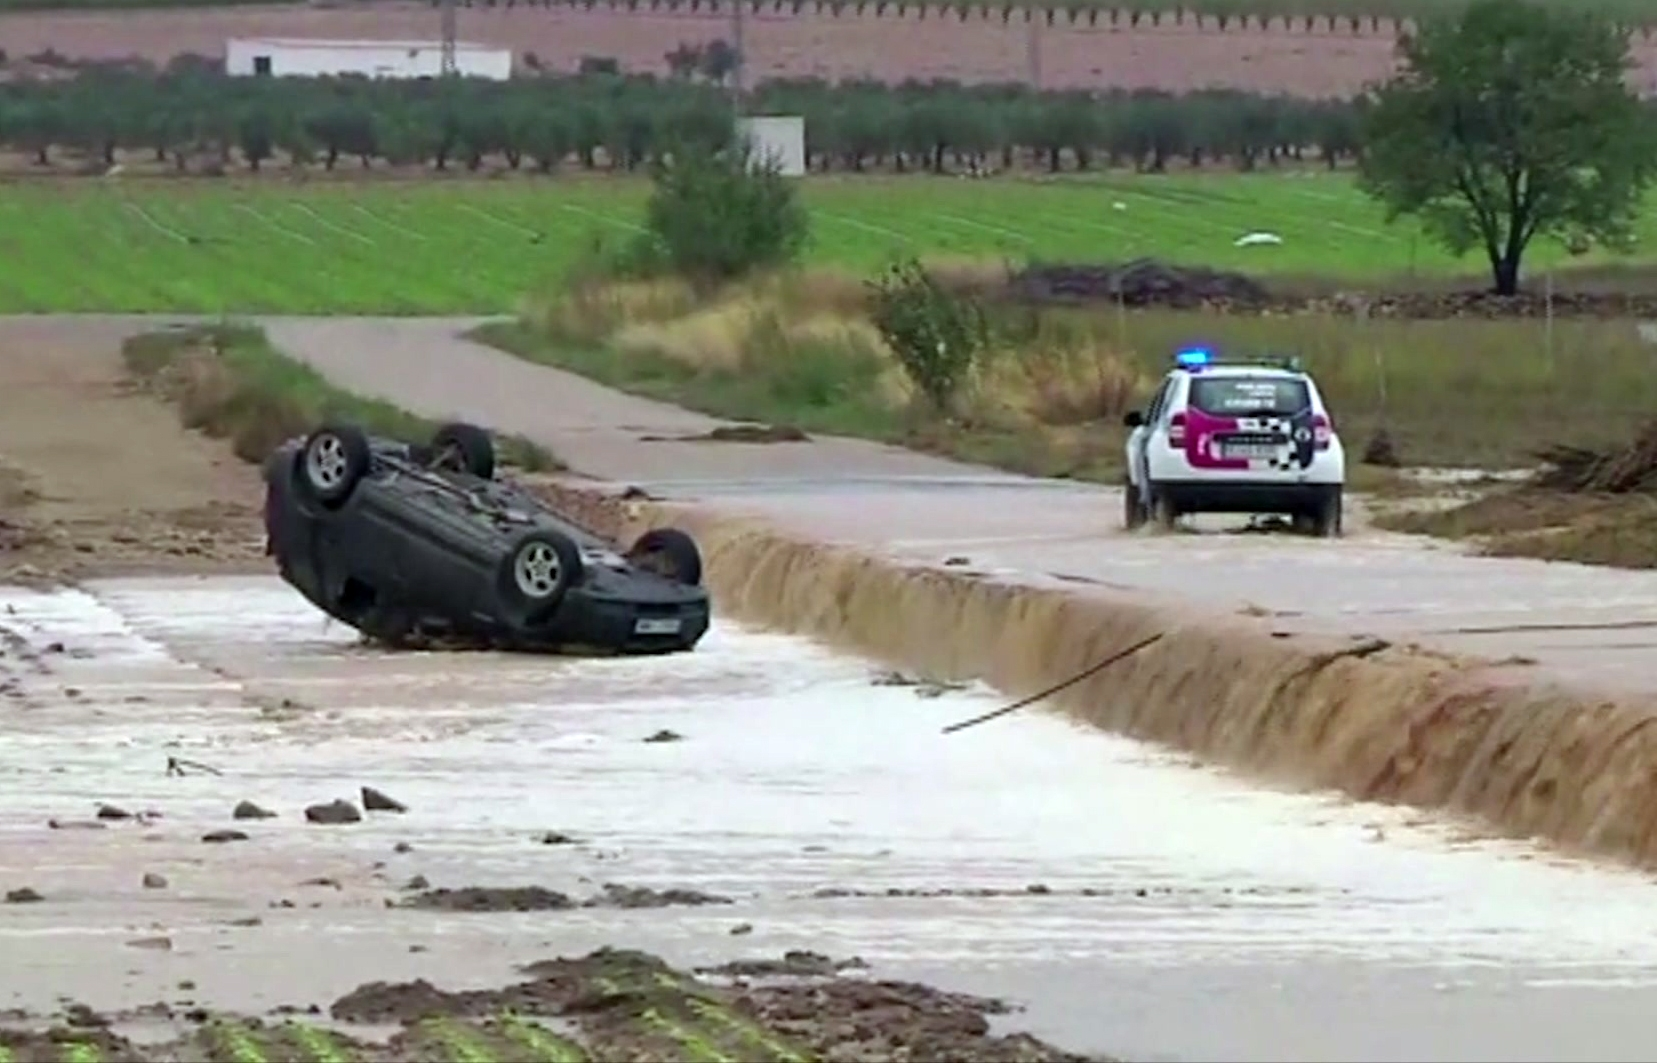 In this image made from video provided by Atlas, a police car drives to an overturned vehicle in which two people were drowned by floodwater, in Caudete, Spain, Thursday, Sept. 12 2019.  A large area of southeast Spain was battered Thursday by what was forecast to be its heaviest rainfall in more than a century, with the storms wreaking widespread destruction and killing at least two people. (Atlas via AP)